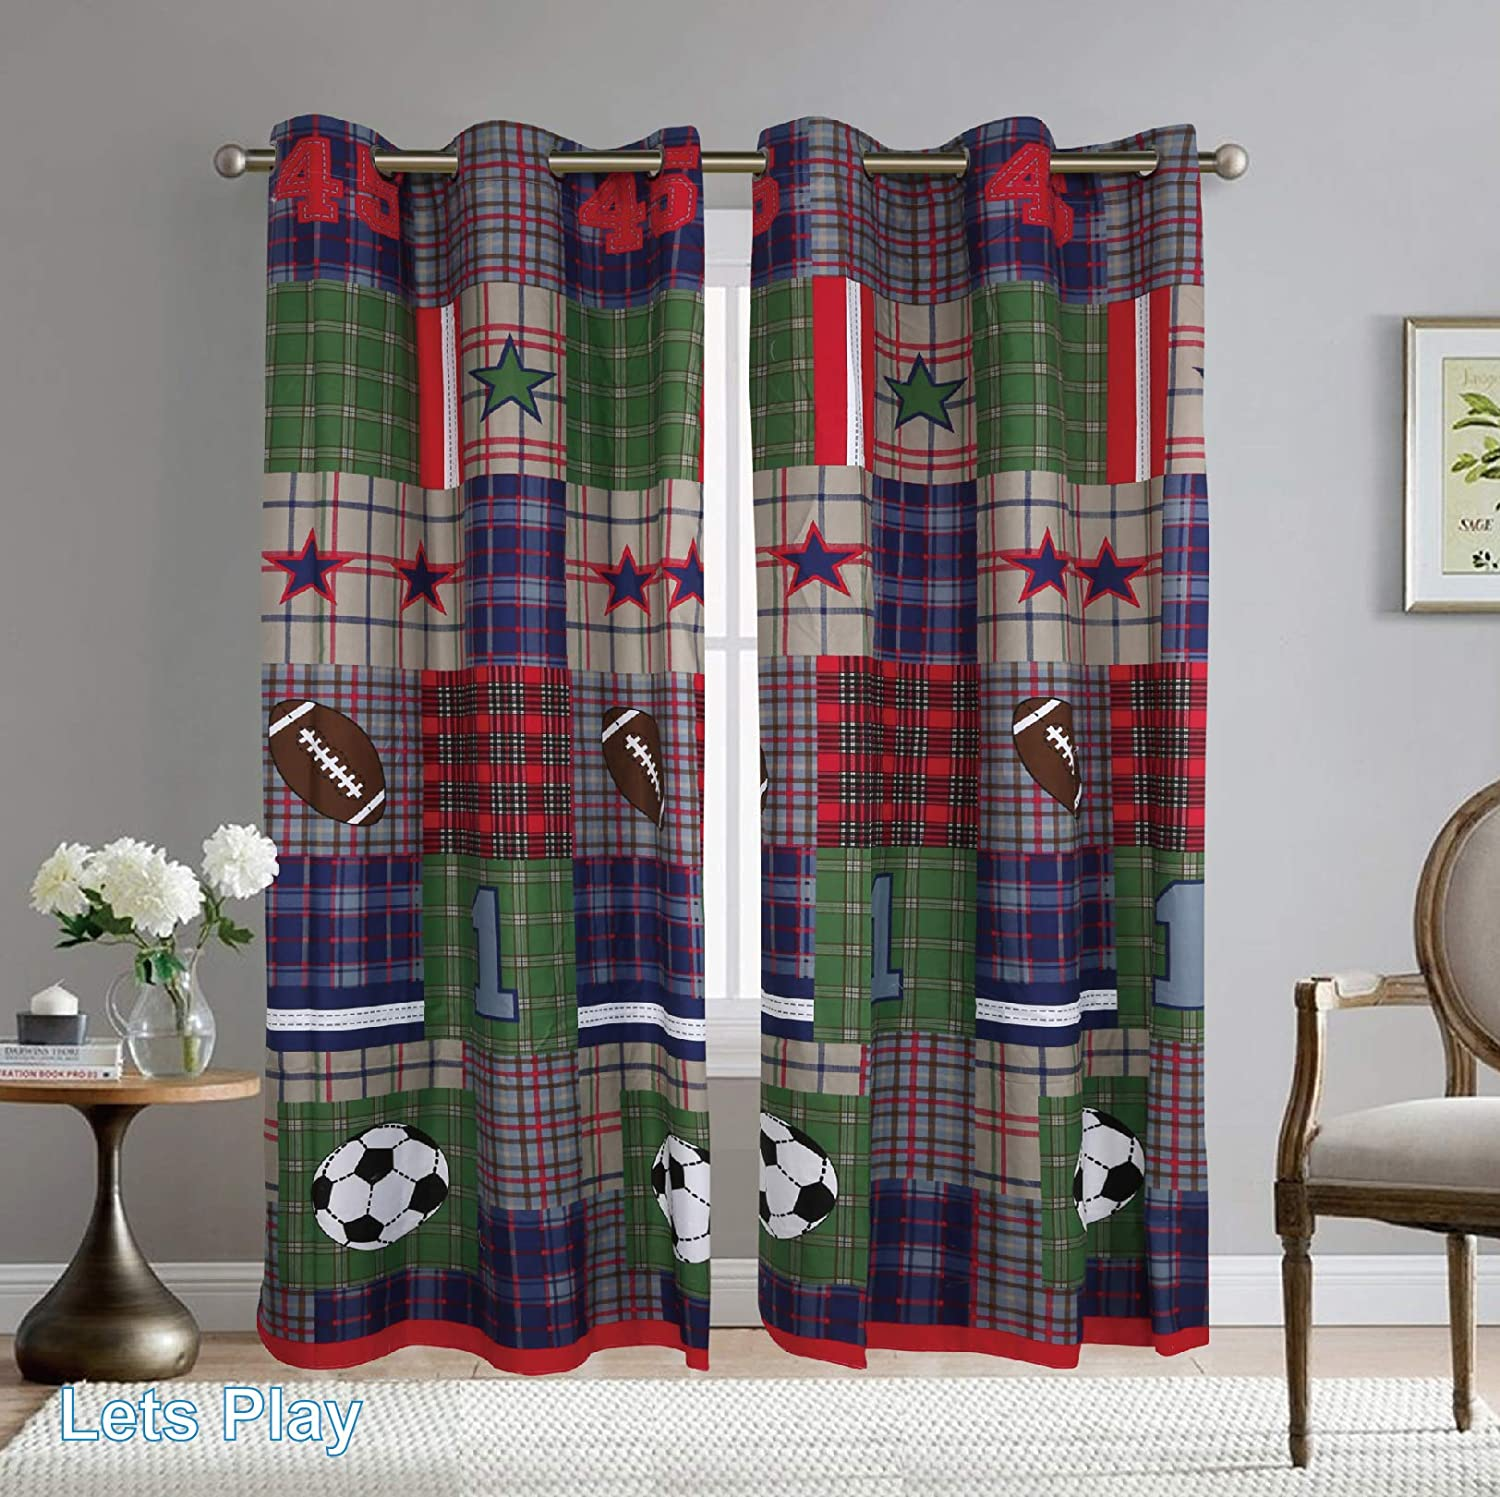 Full Super Star Quilt Sports Soccer Basketball Football Baseball Coverlet for Boys Sapphire Home 6pc Kids Teens Full Bedspread Quilt Set with Matching Curtains Panels 84 Length Gray Blue